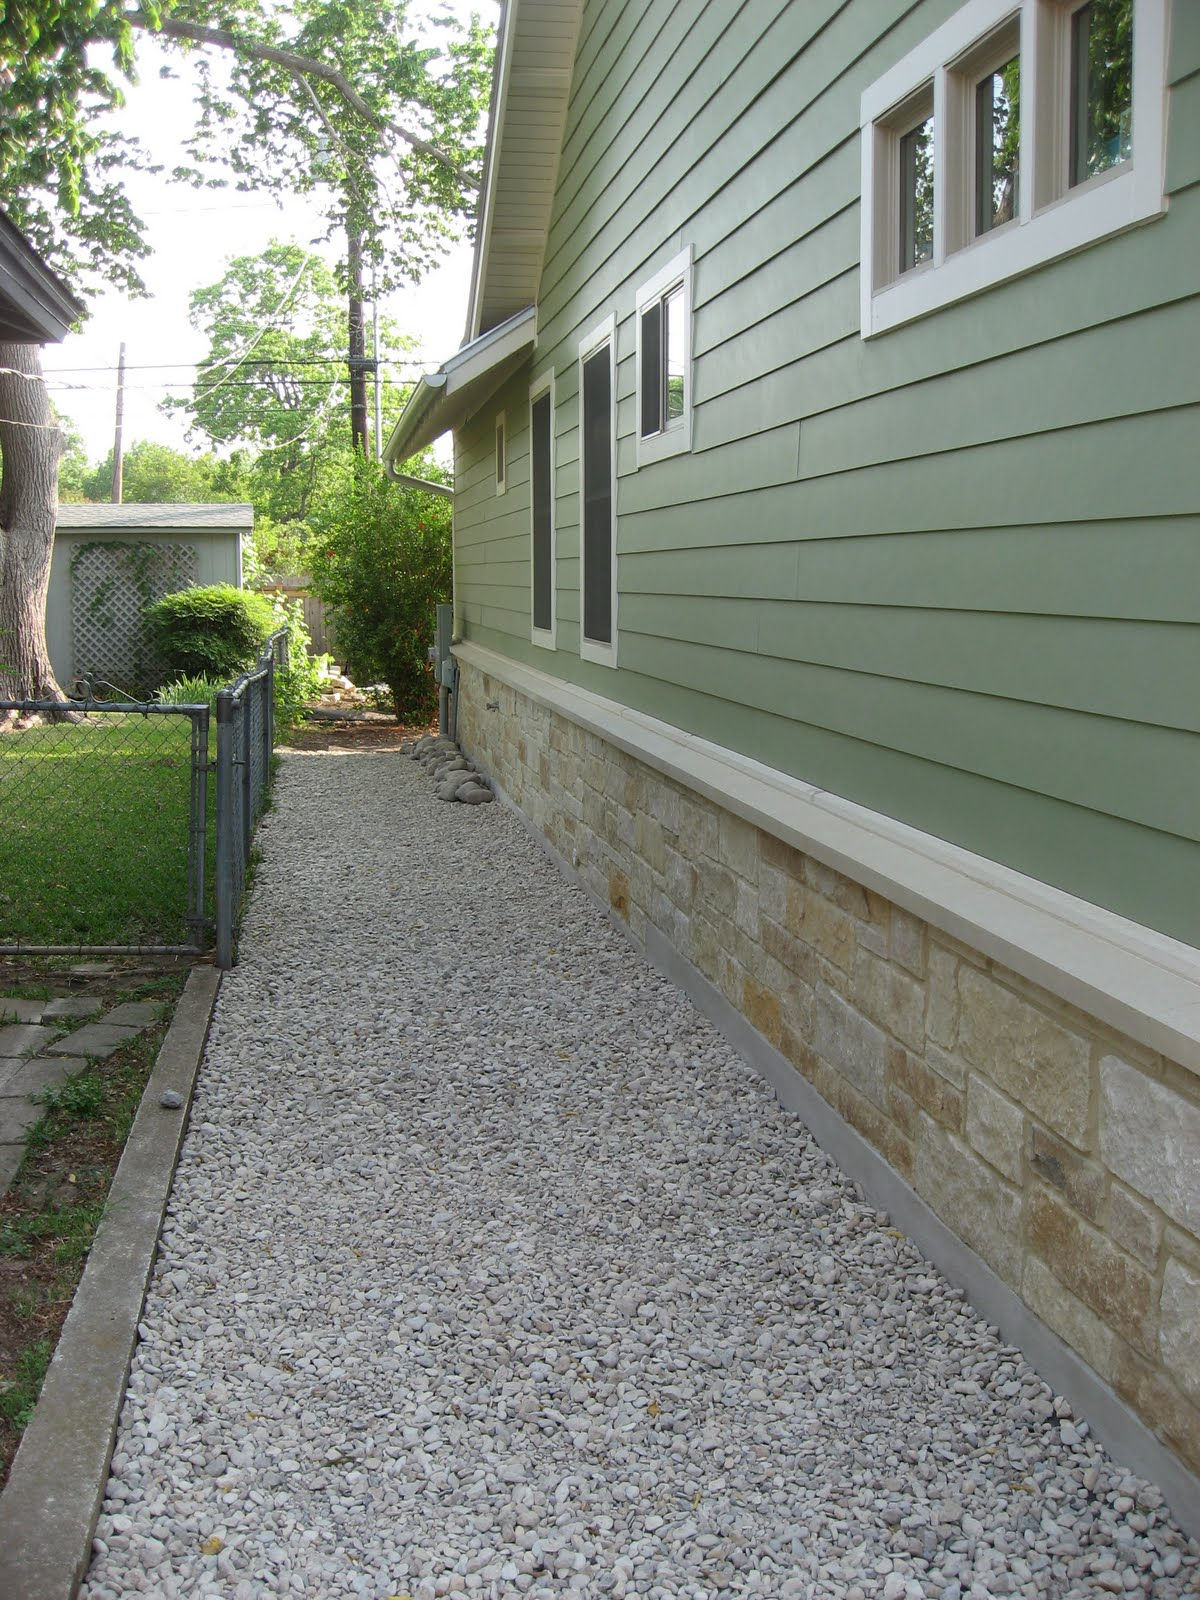 Landscaping Ideas East : Landscaping ideas for east side of house pdf